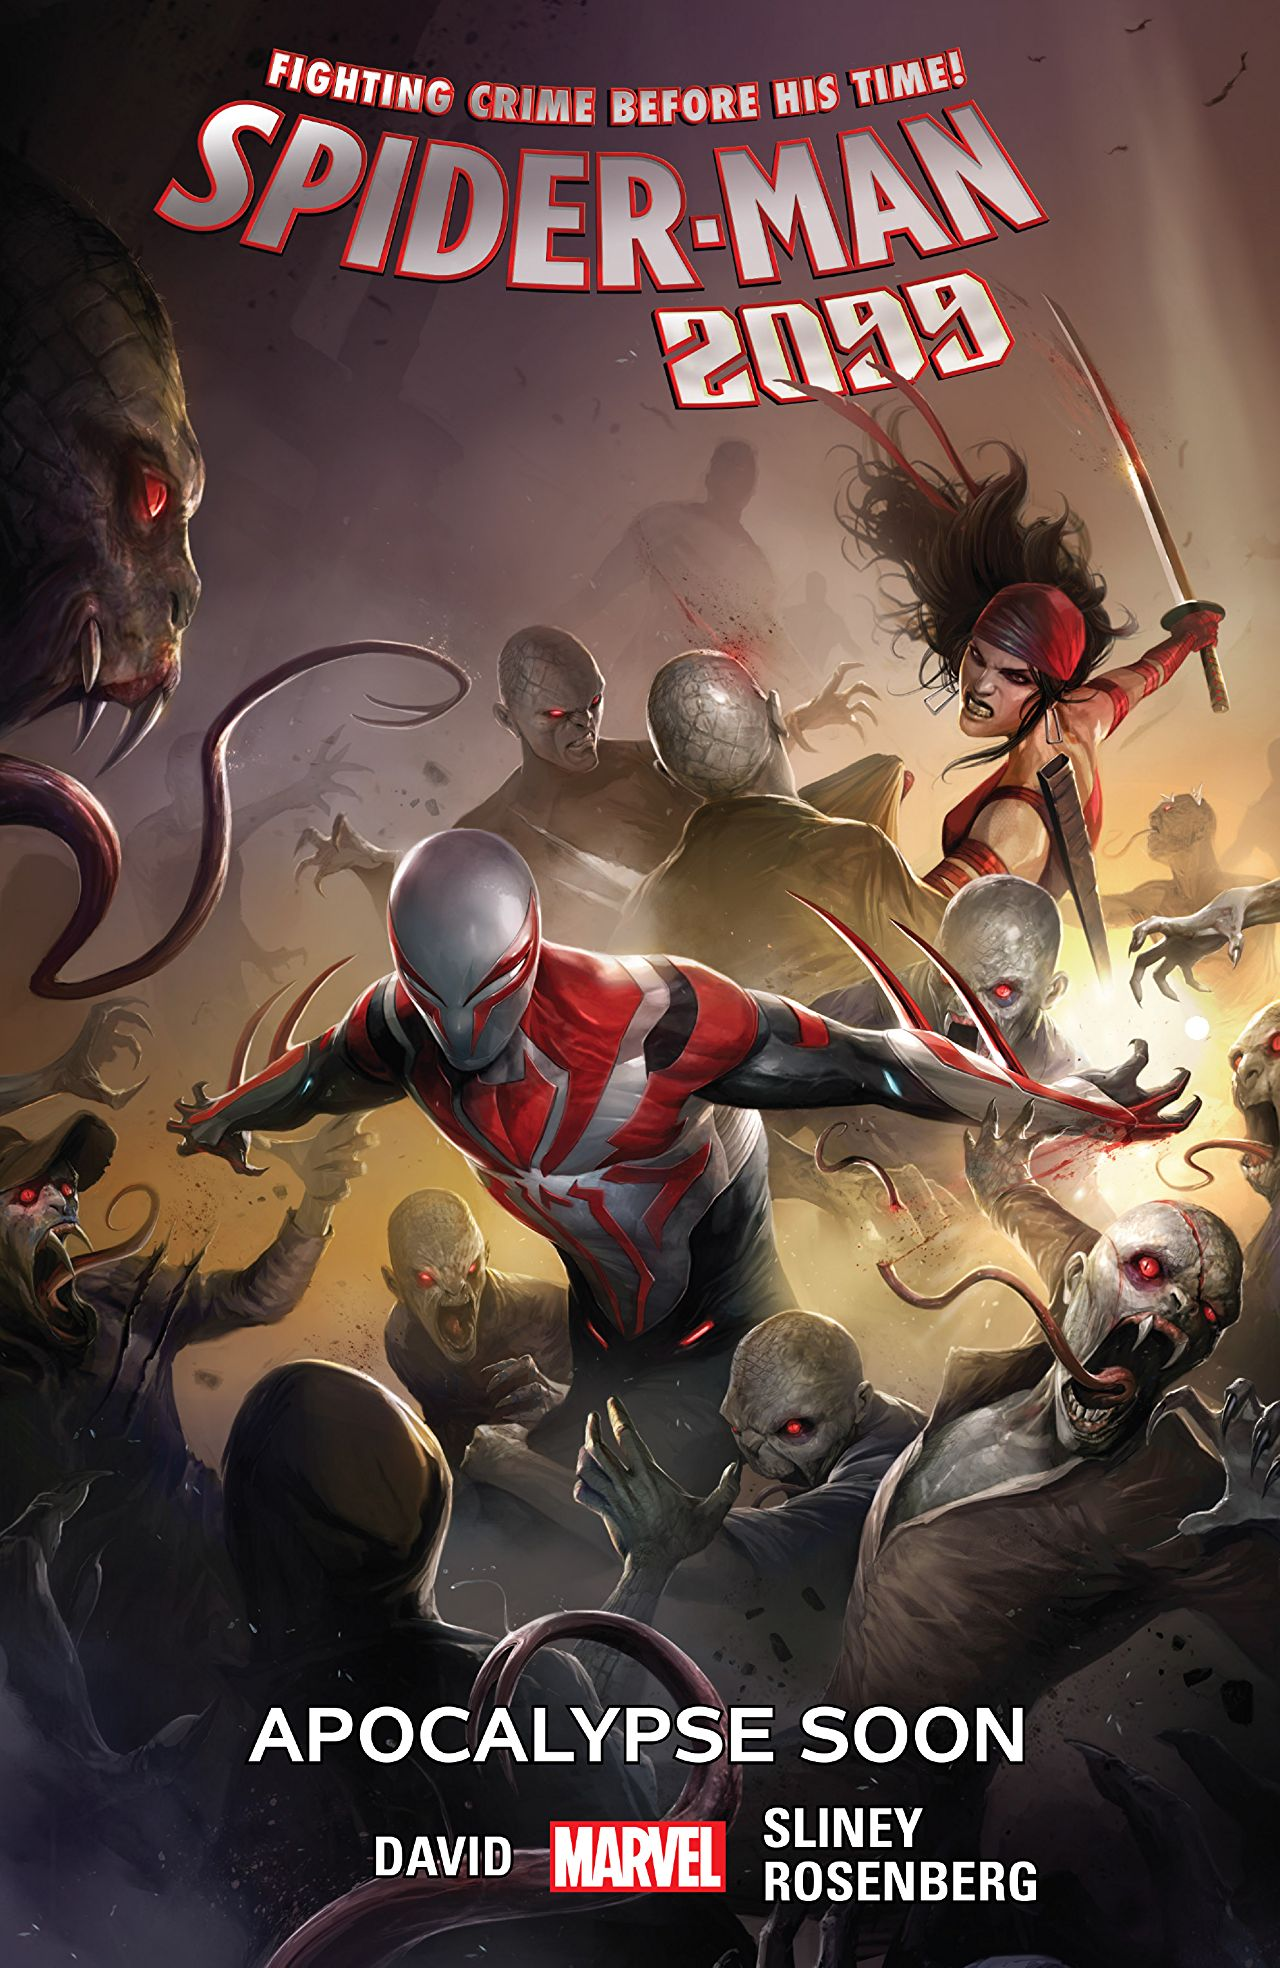 'Spider-Man 2099' Vol. 6 is a forgettable read not for newcomers